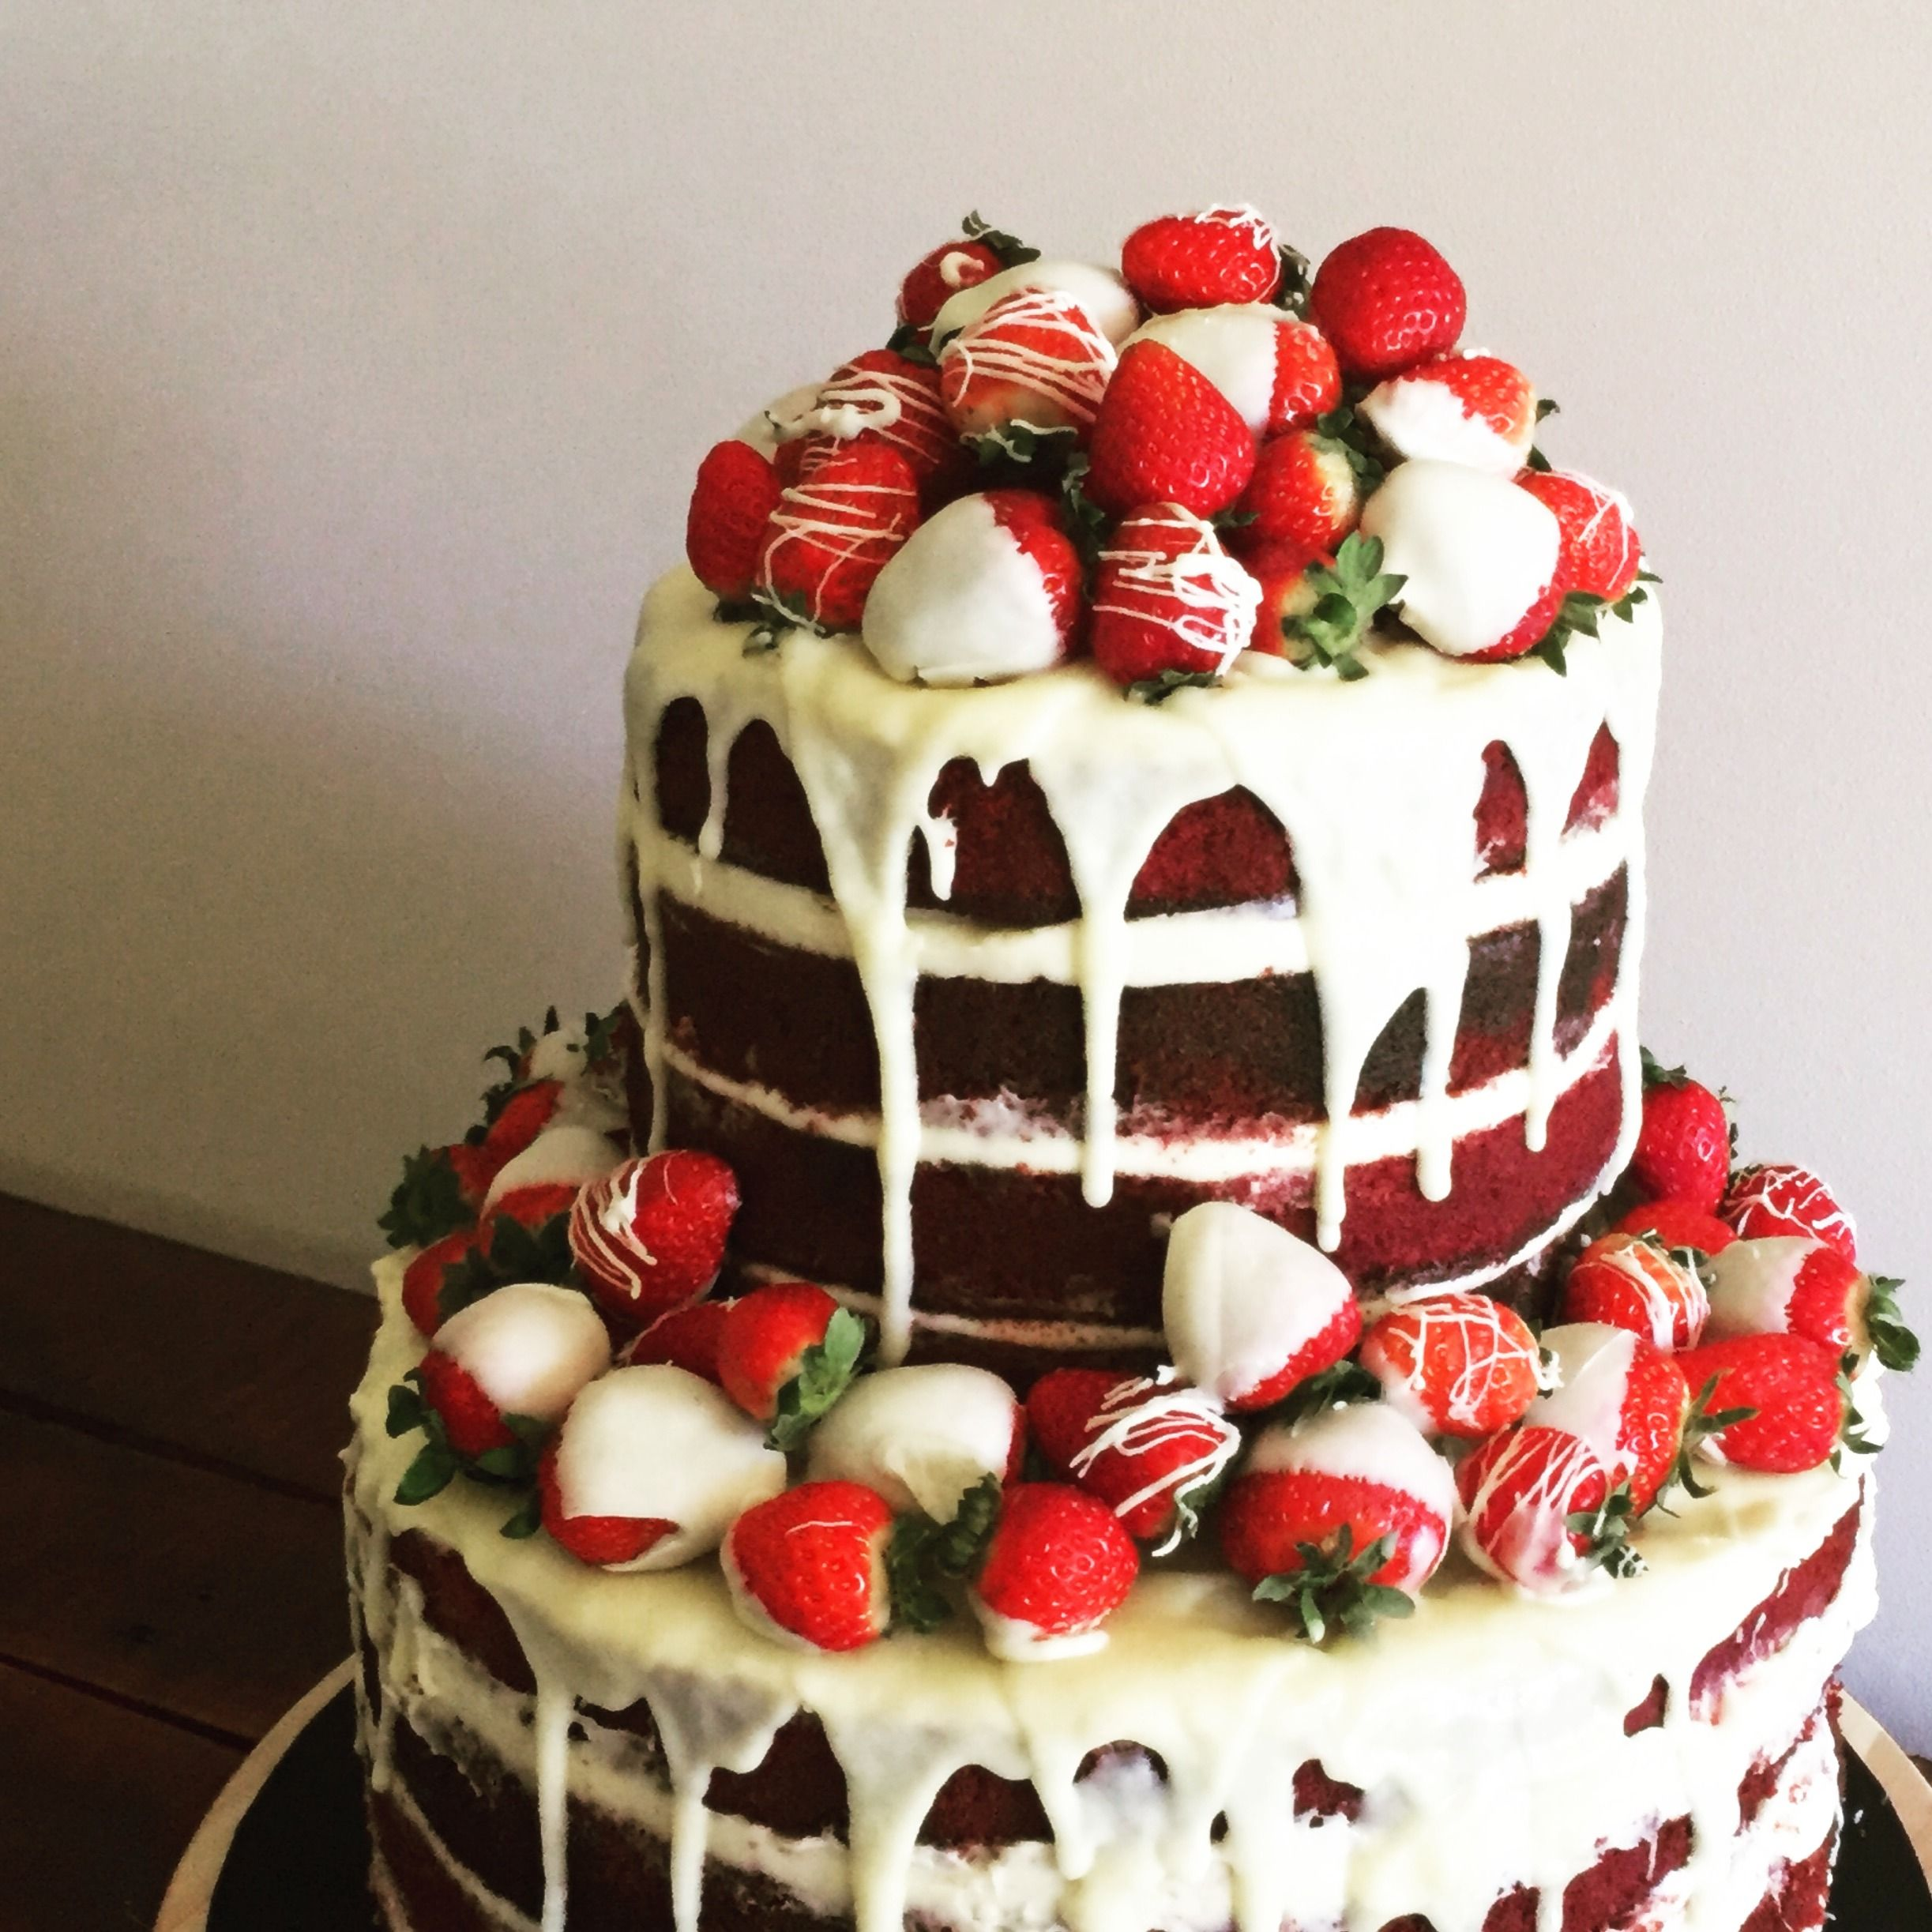 2 Tier Red Velvet cake layered with cream cheese butter frosting